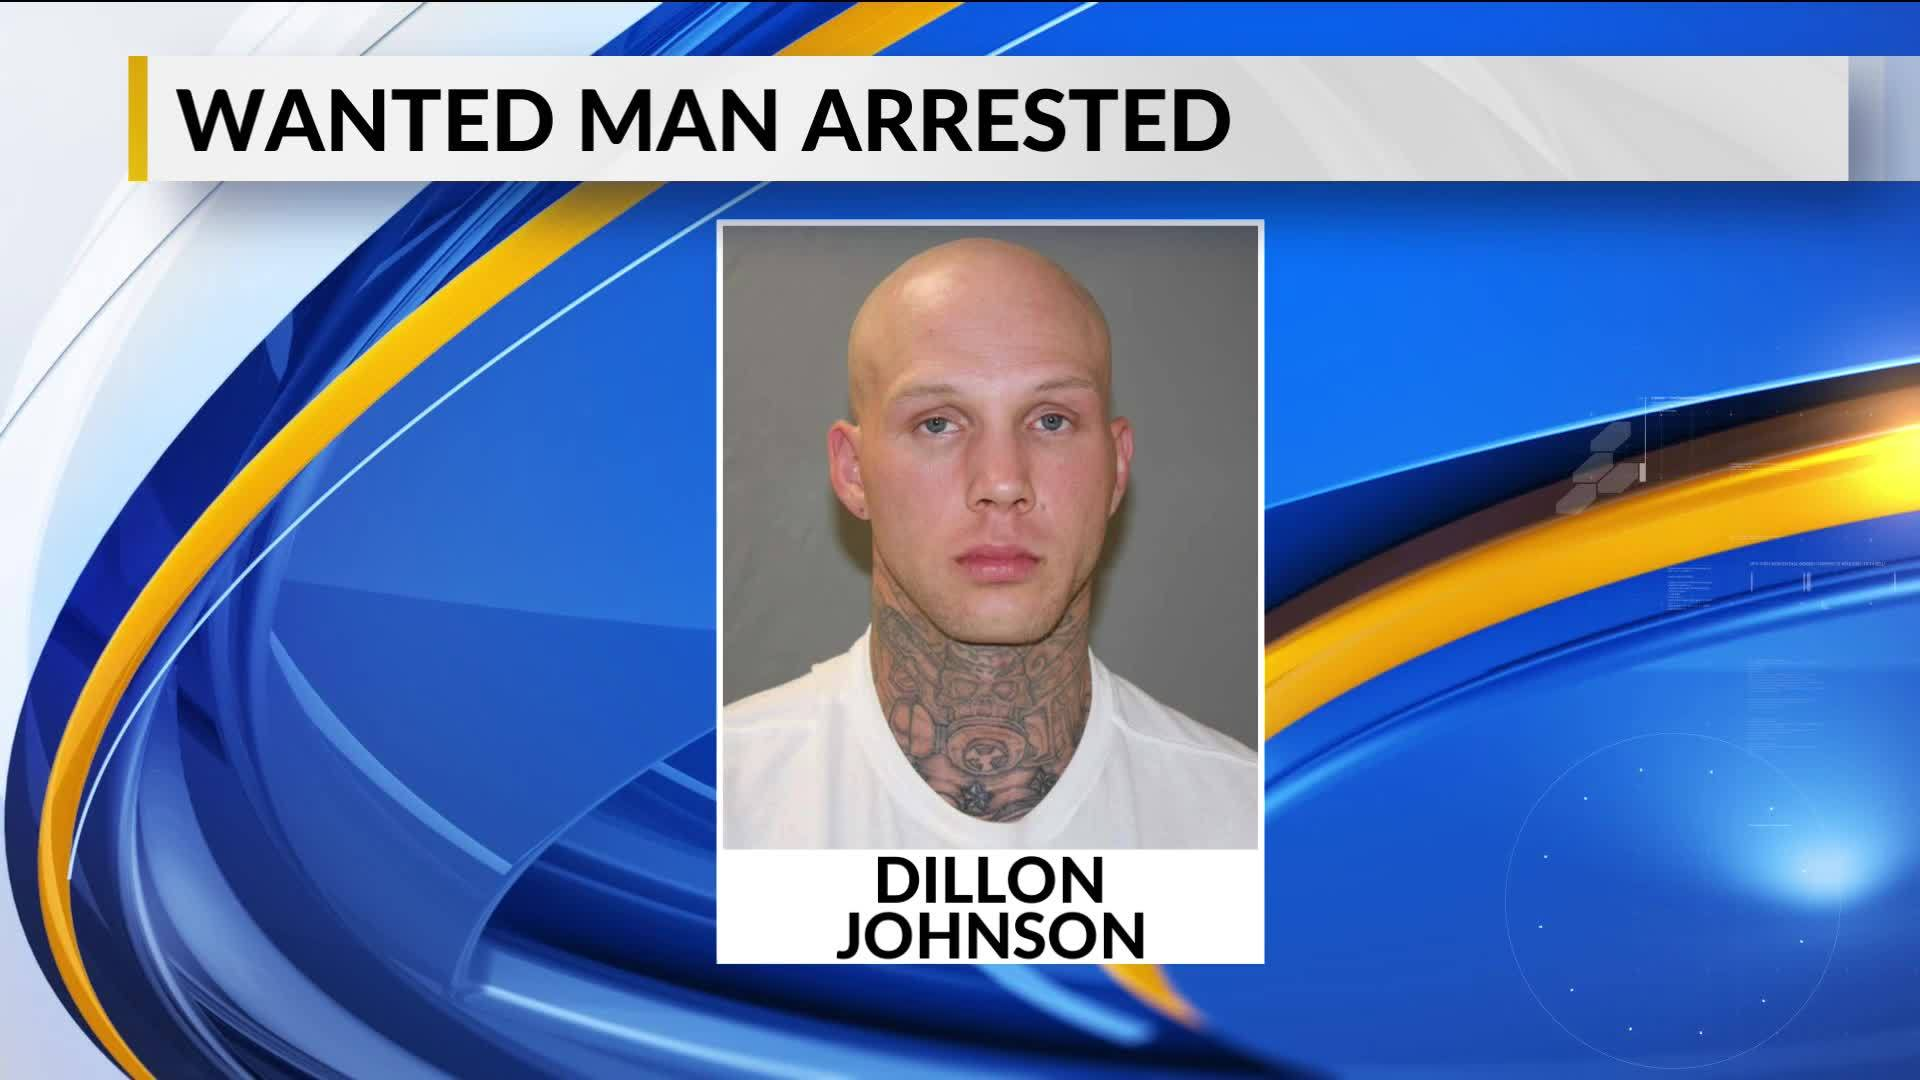 Camden_County_manhunt_ends_with_an_arres_3_20190530232908